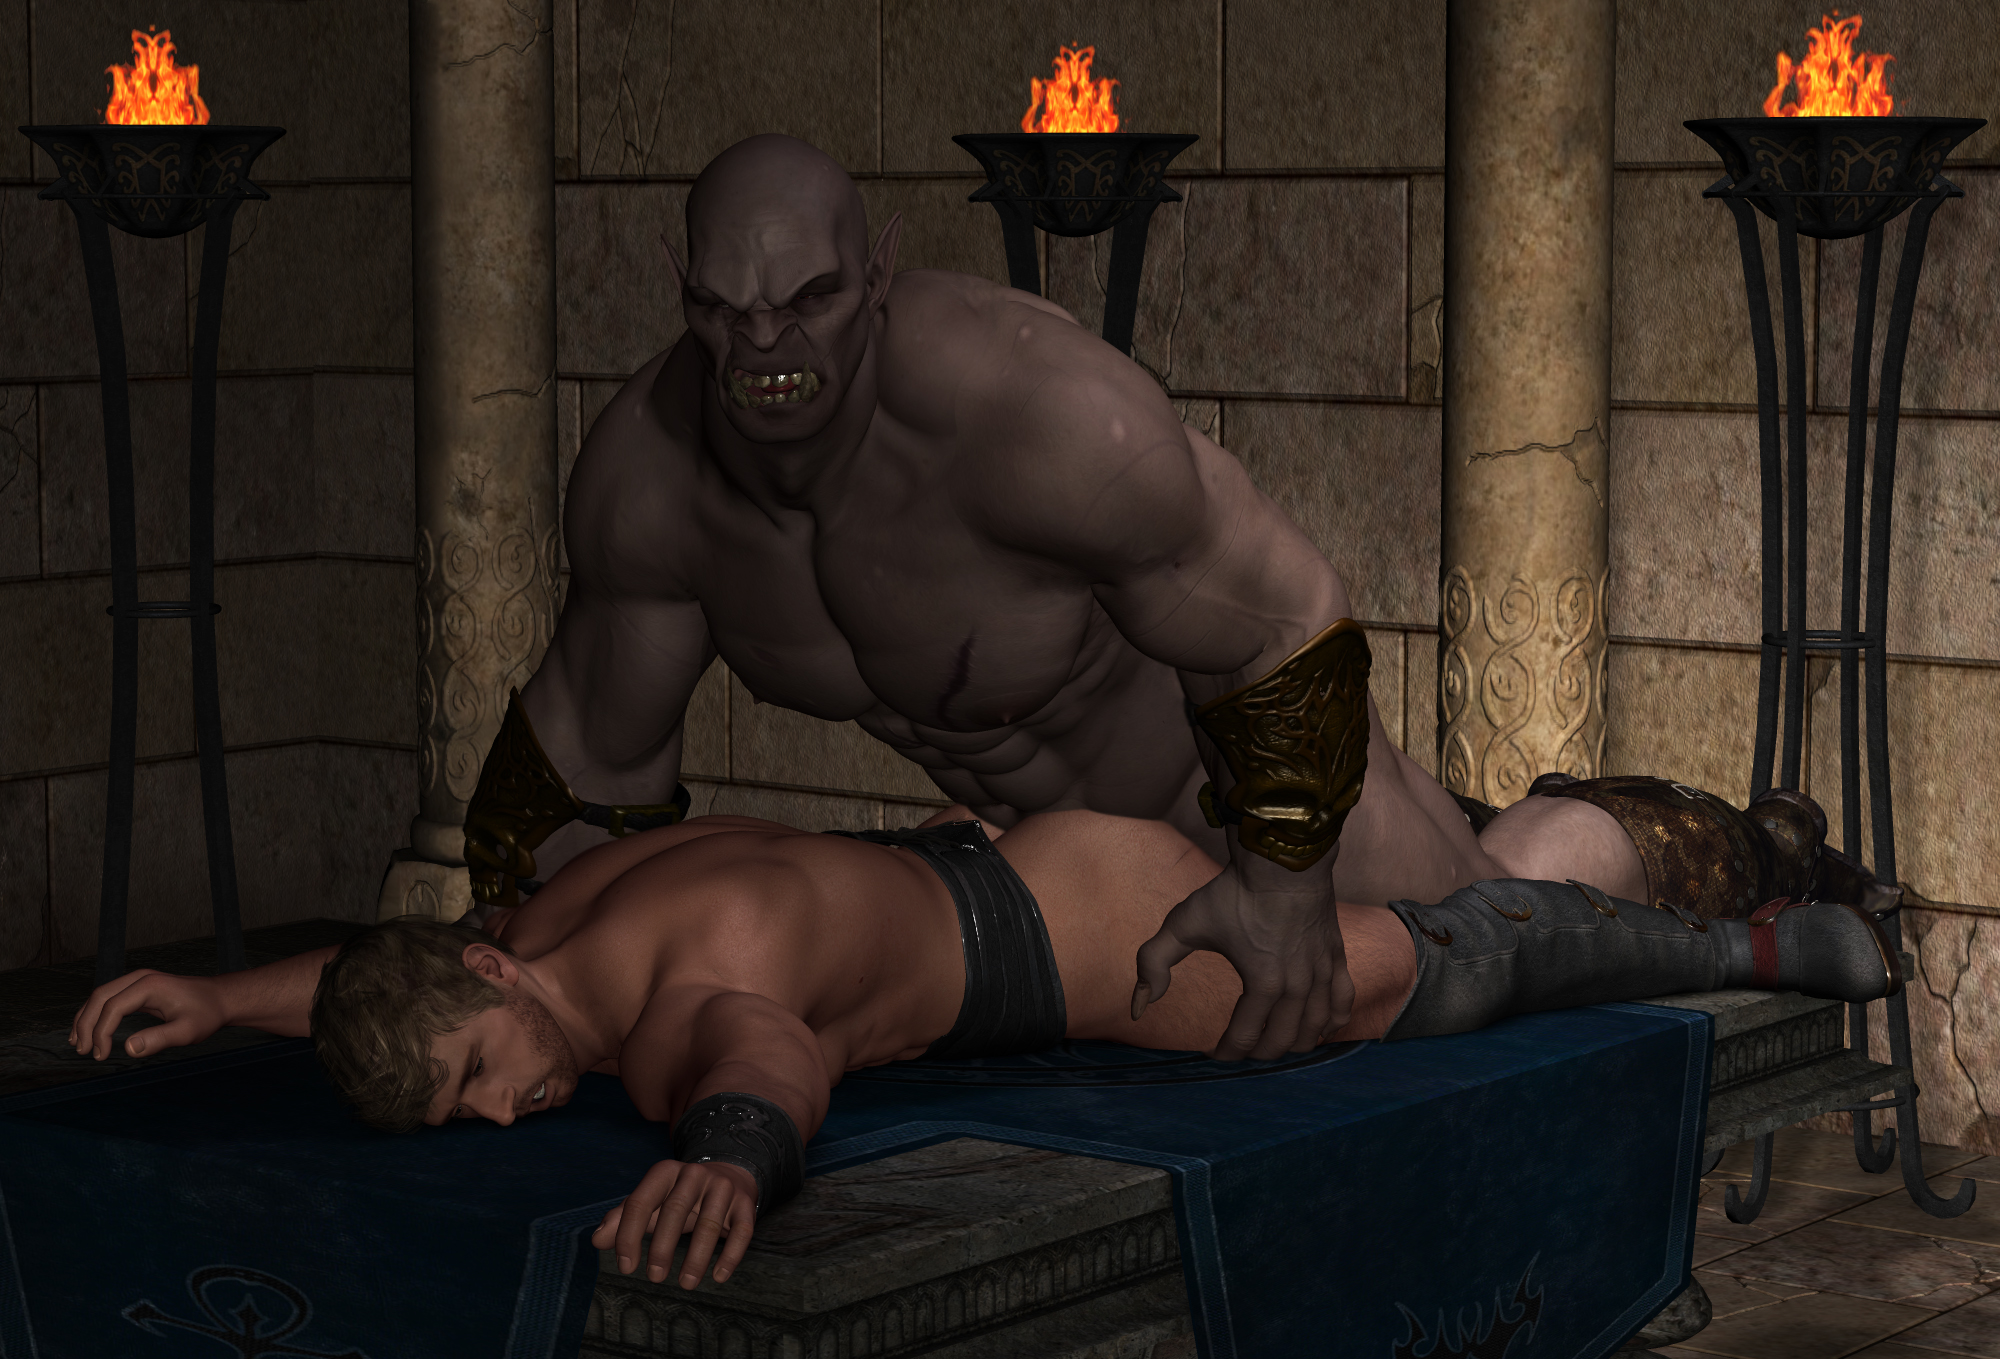 Gay orc porn pictures hentai videos